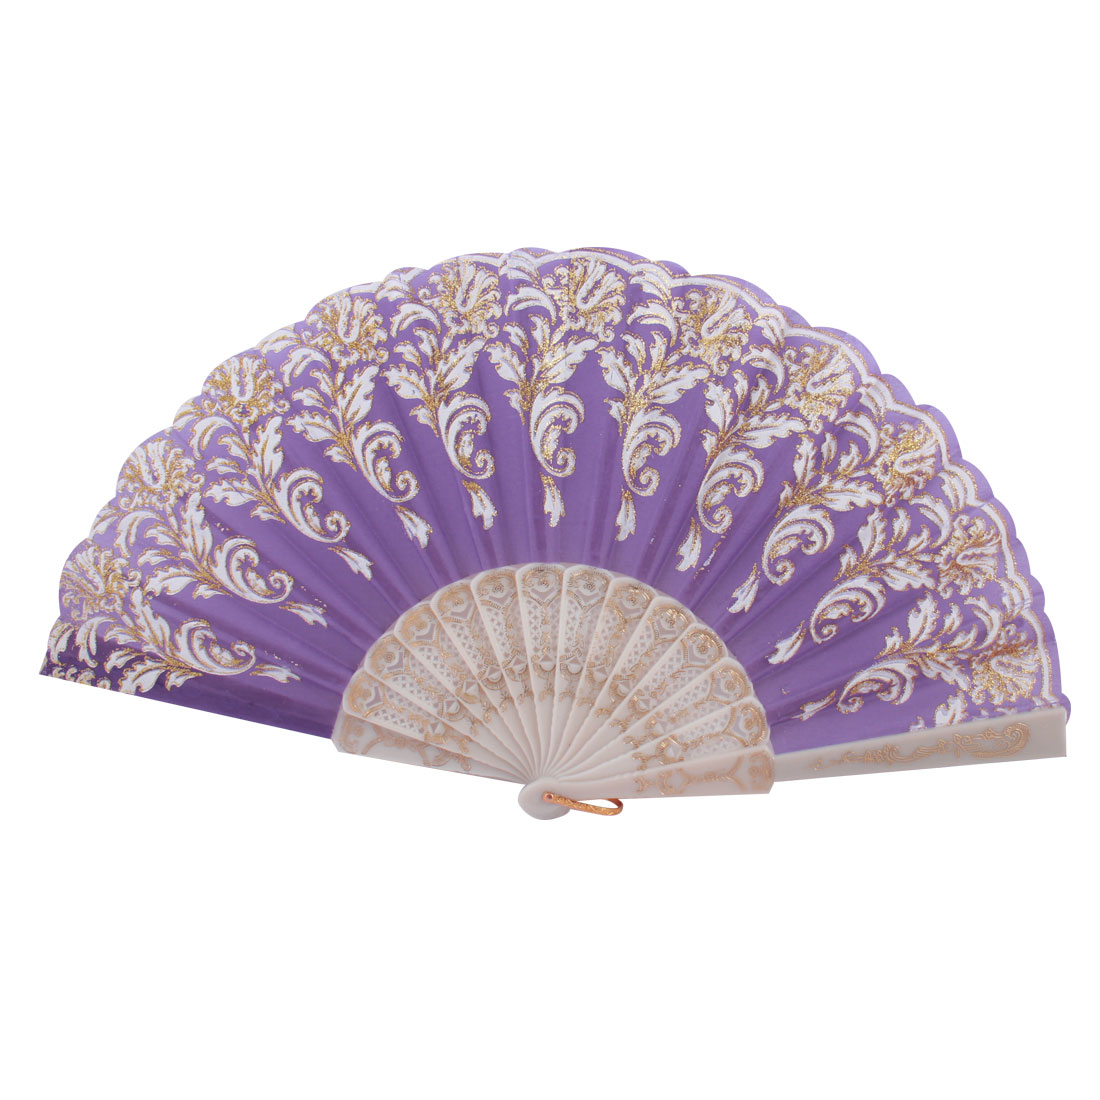 Plastic Frame Gold Tone Glittery Powder Detail Floral Printed Folding Hand Fan Purple White